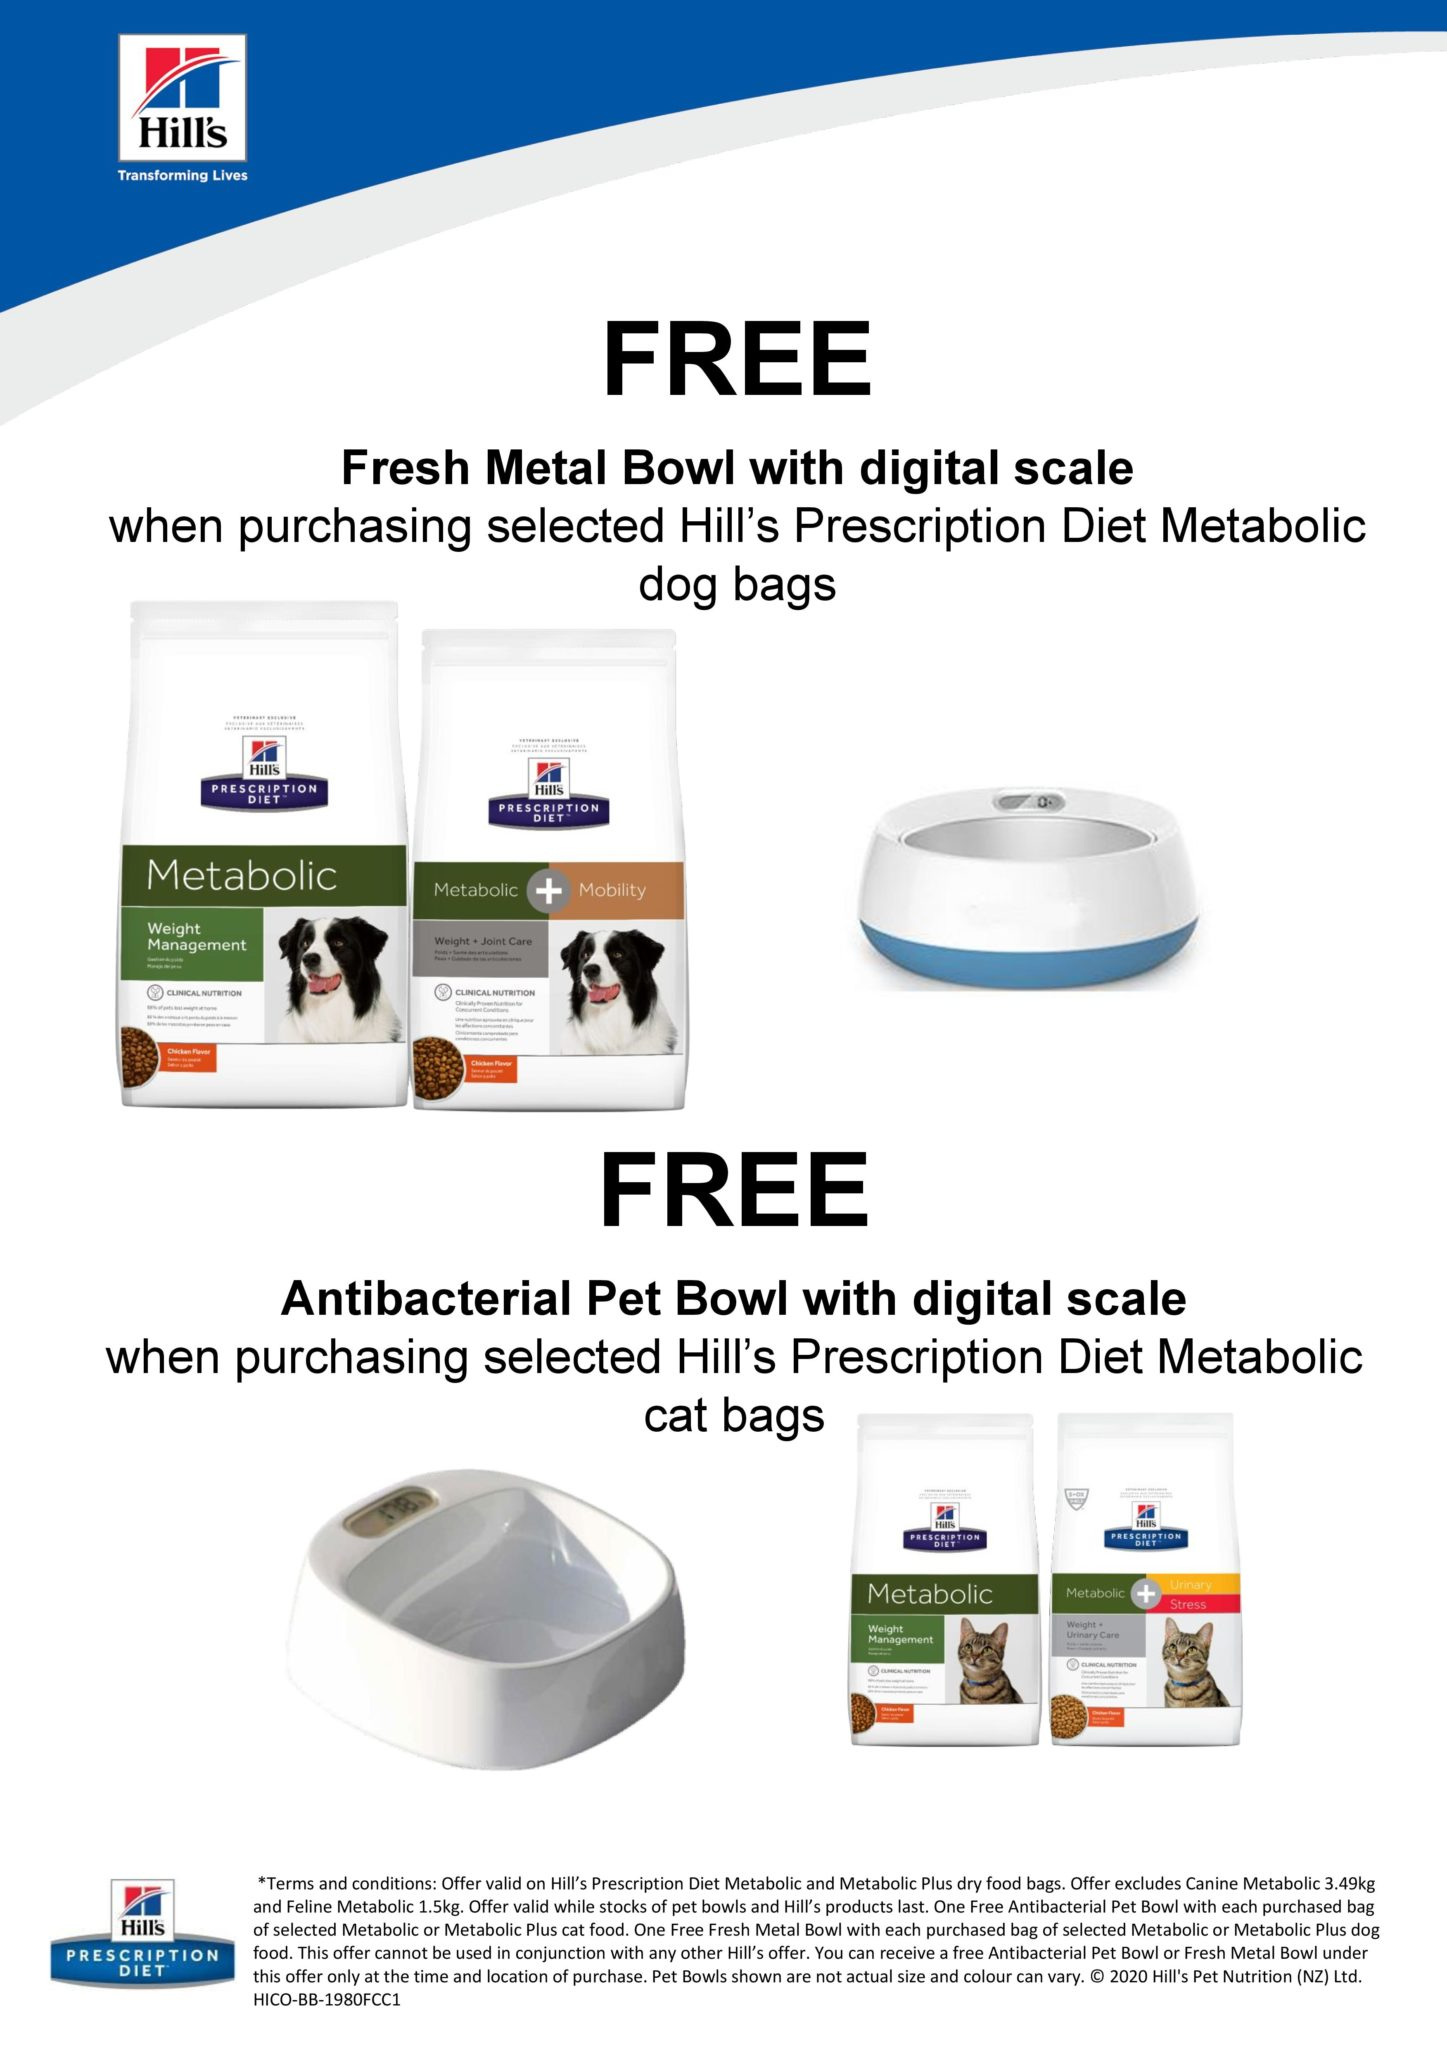 Free Metal Bowl With Digital Scales With Selected Hills Metabolic!